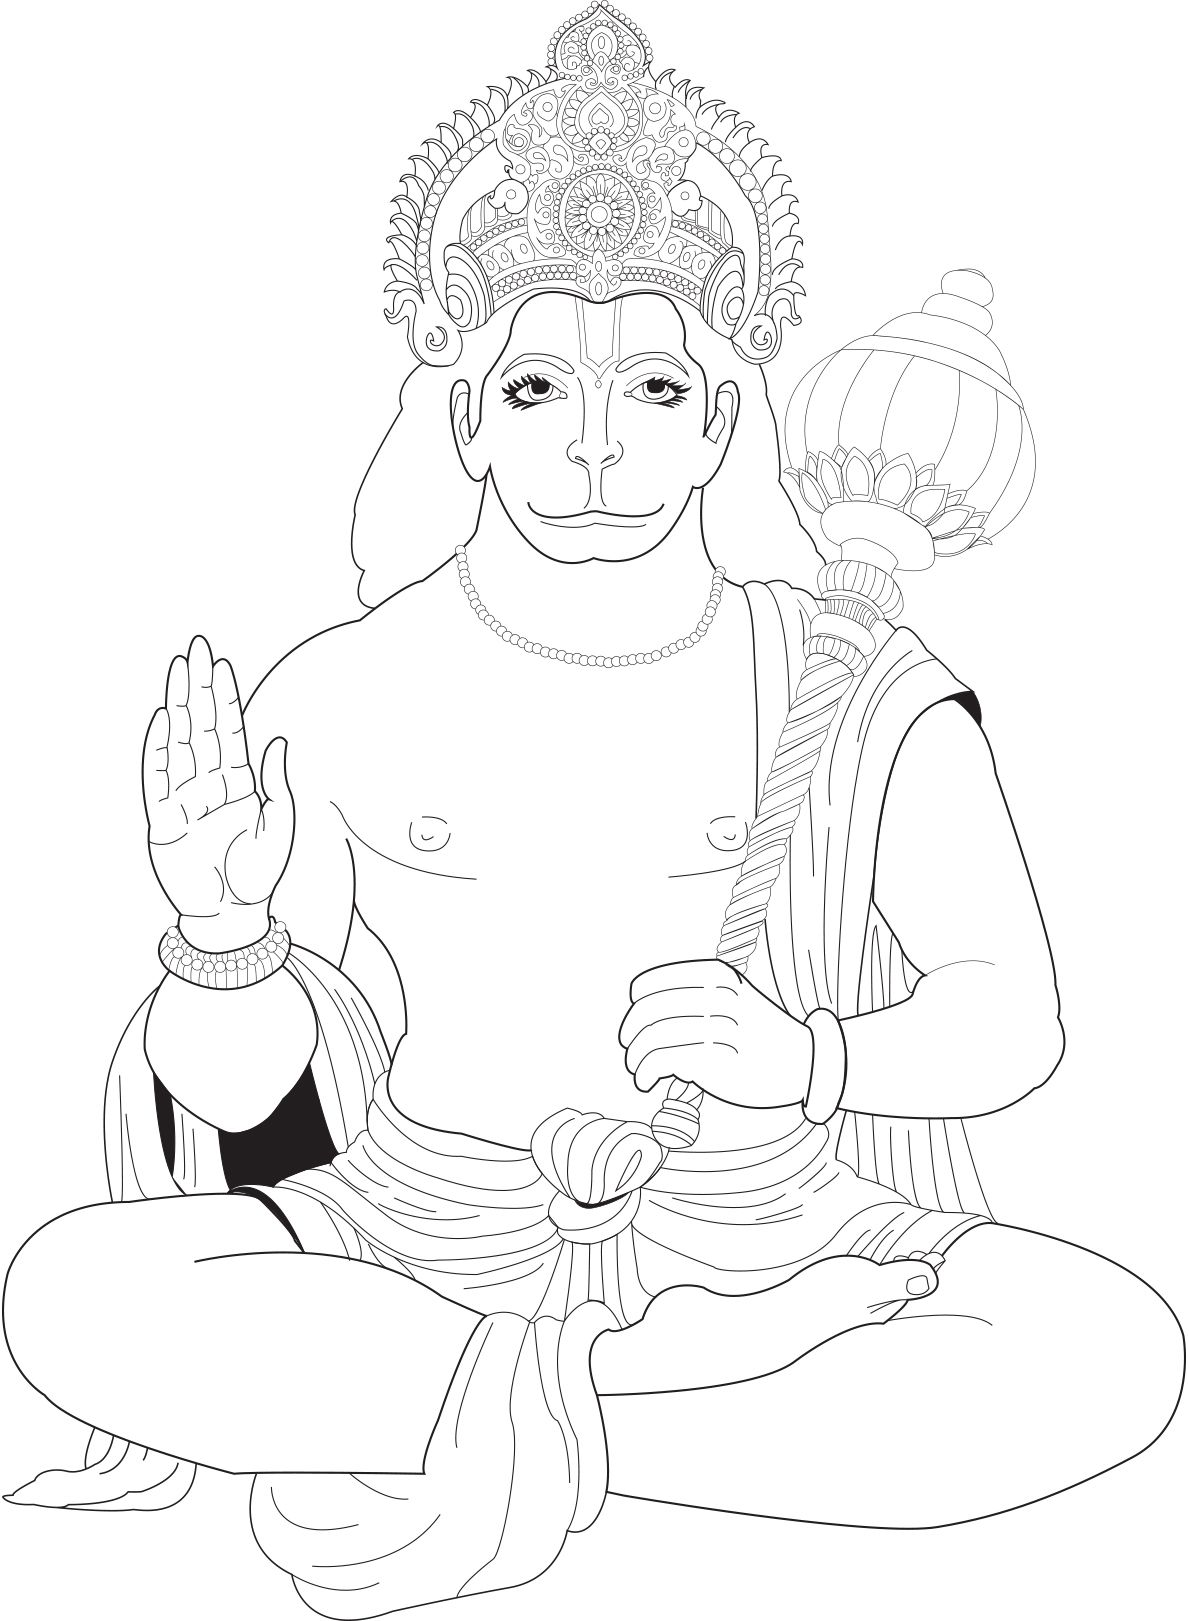 1189x1621 Shocking Hanuman U Bollywood Coloring Pages For Adults Justcolor